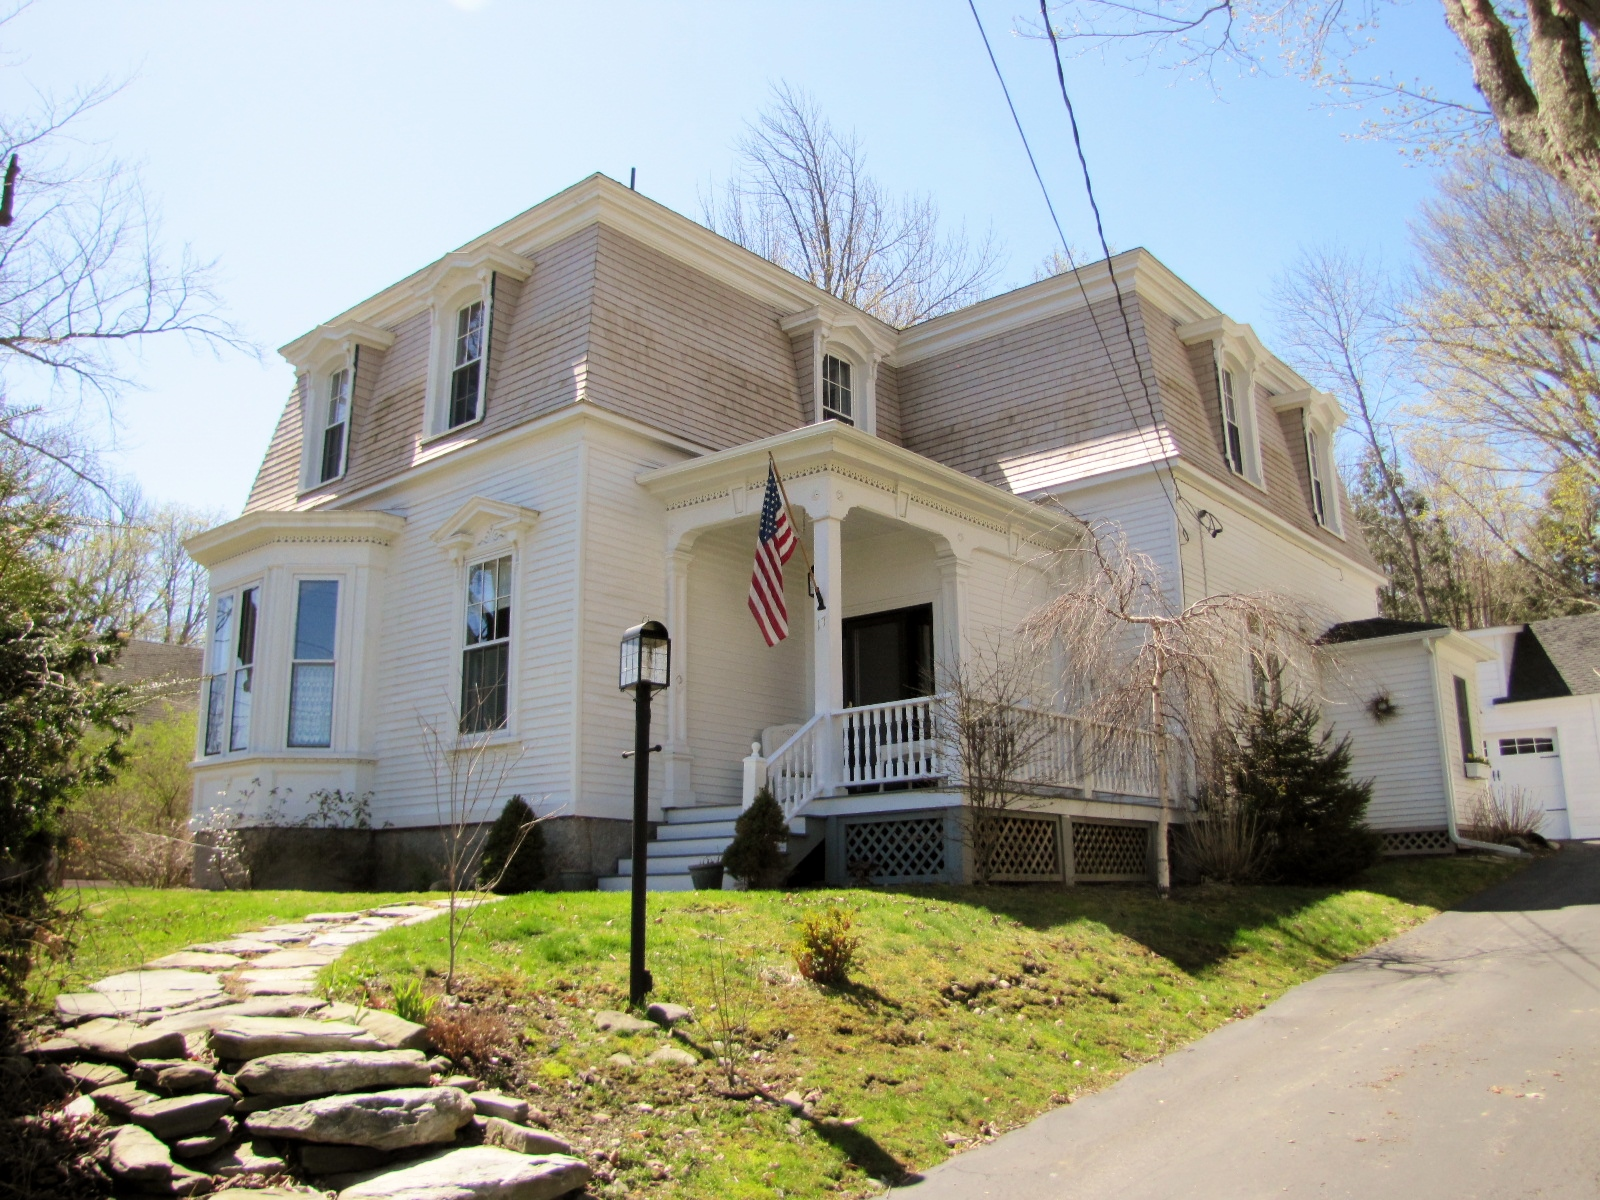 Real Estate Listing - 4 bedrooms, 2 full baths, chef's kitchen, butler's pantry, 